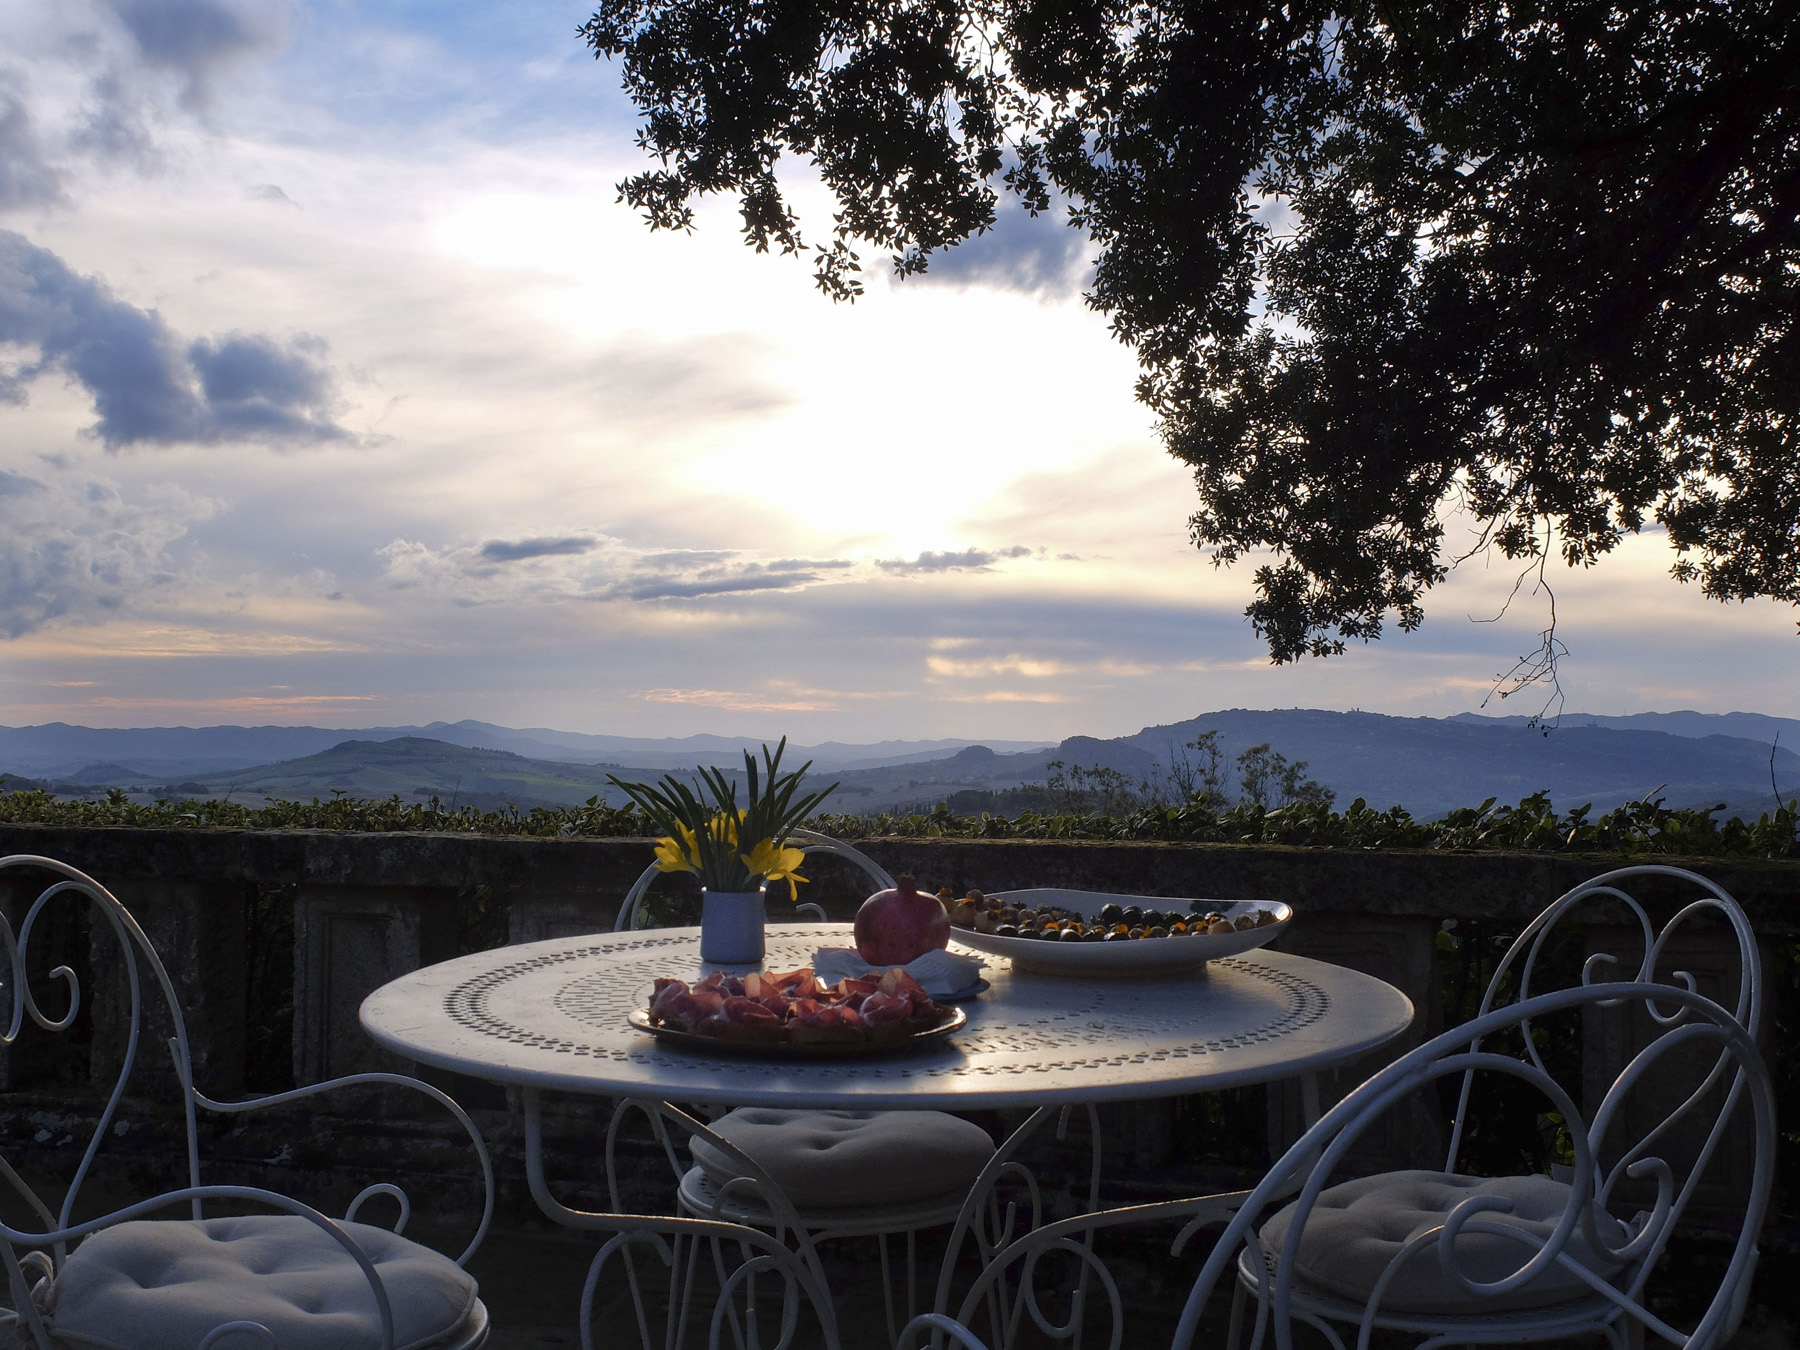 Sunset aperitivo in the garden overlooking the hills of Volterra